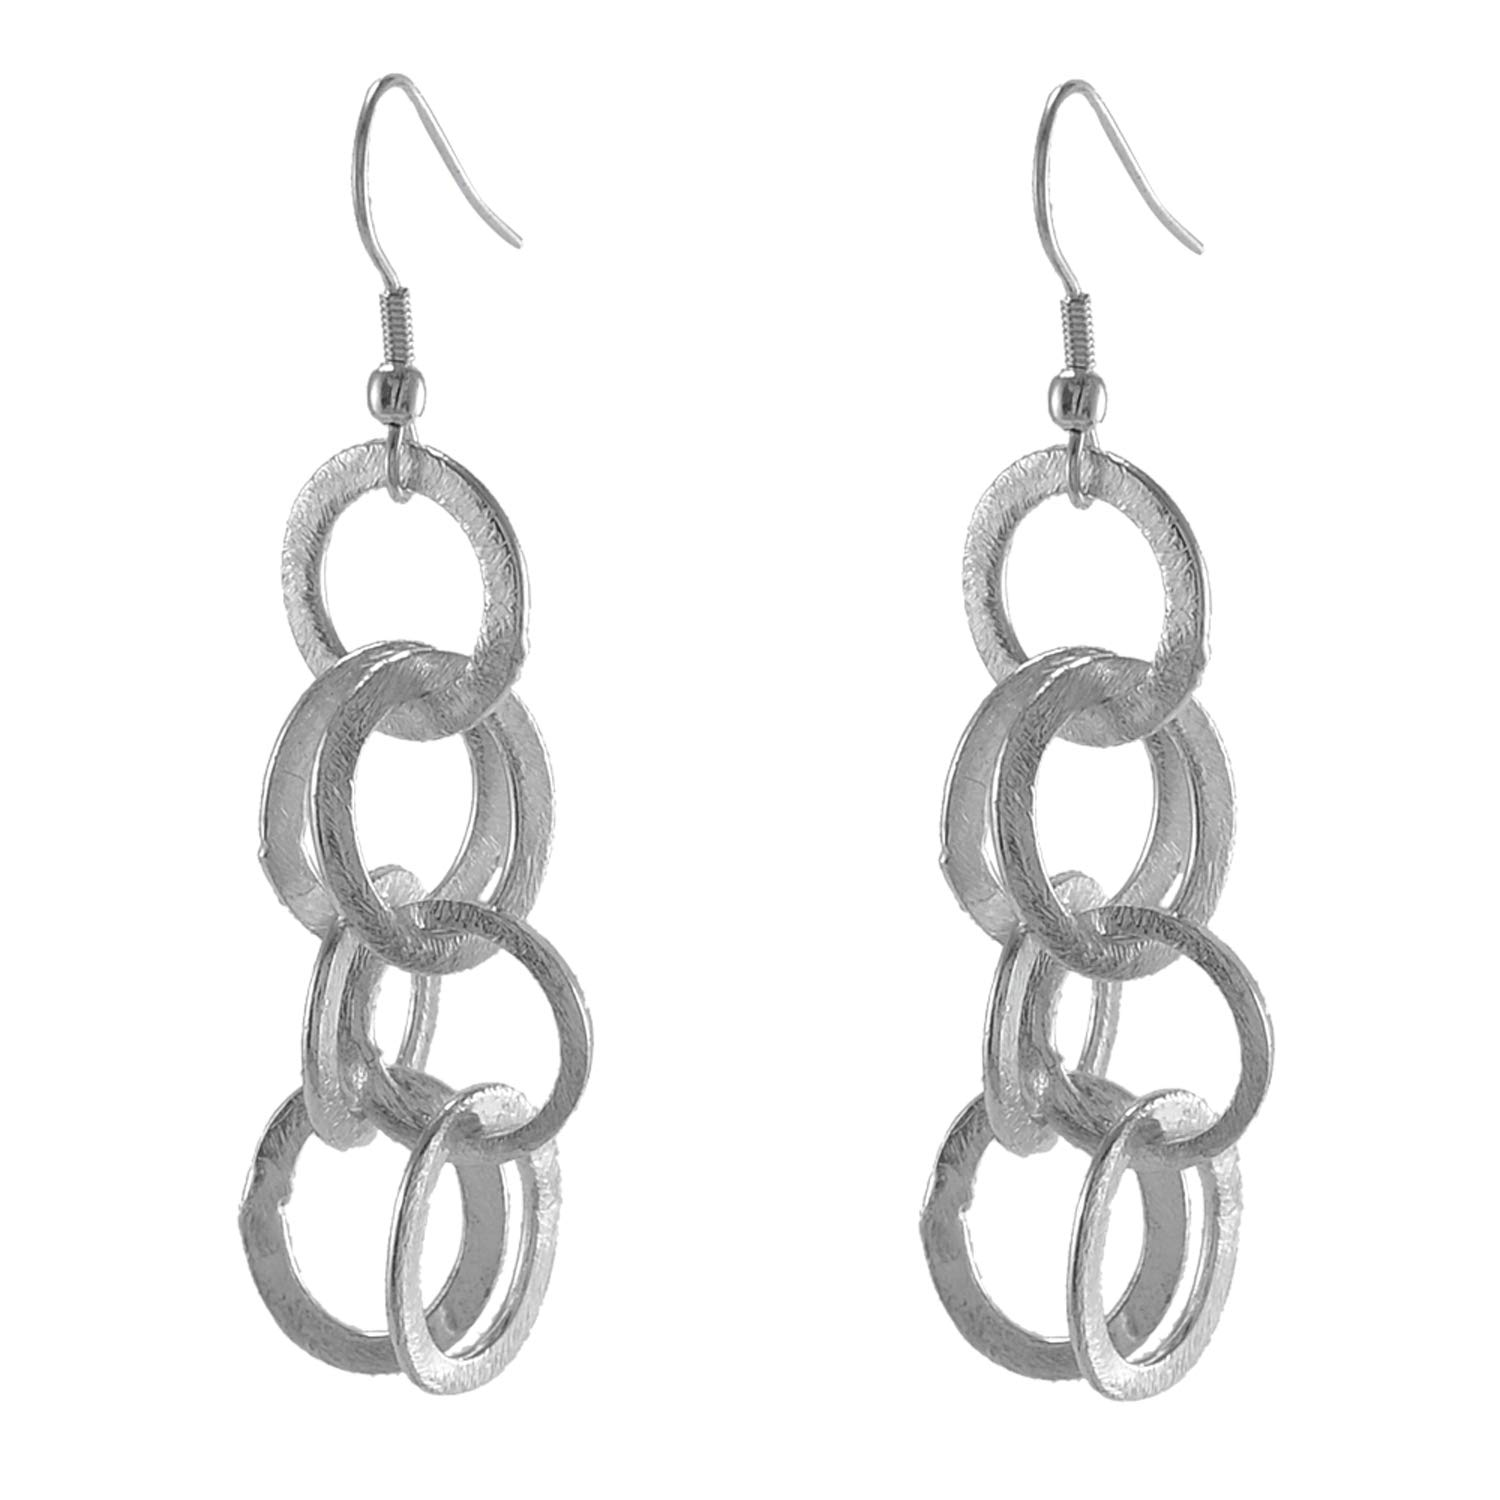 Saamarth Impex 925 Silver Plated Dangle Earring For Women /& Girls PG-126178